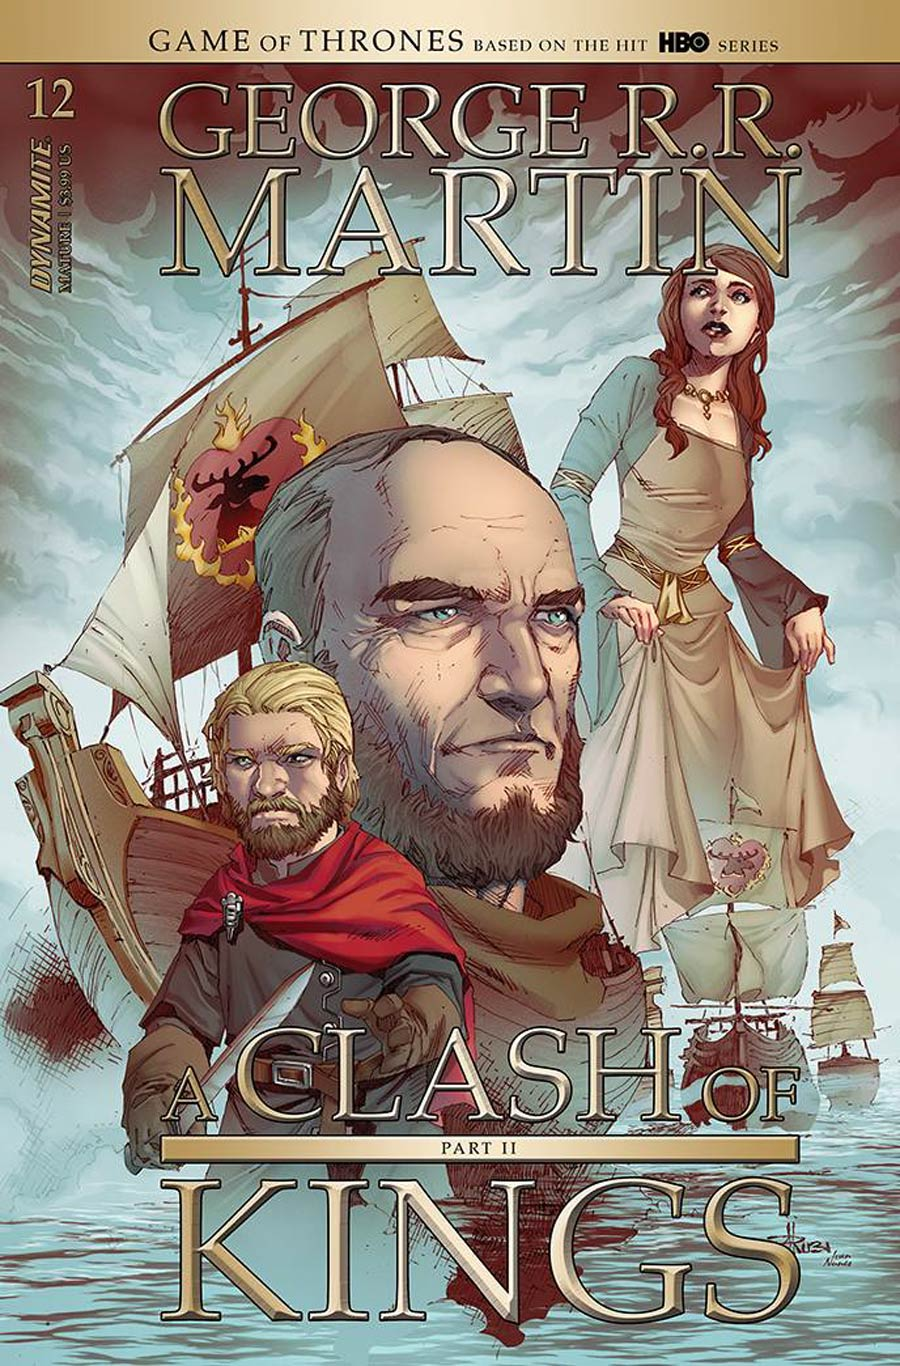 Game Of Thrones Clash Of Kings Vol 2 #12 Cover B Variant Mel Rubi Cover